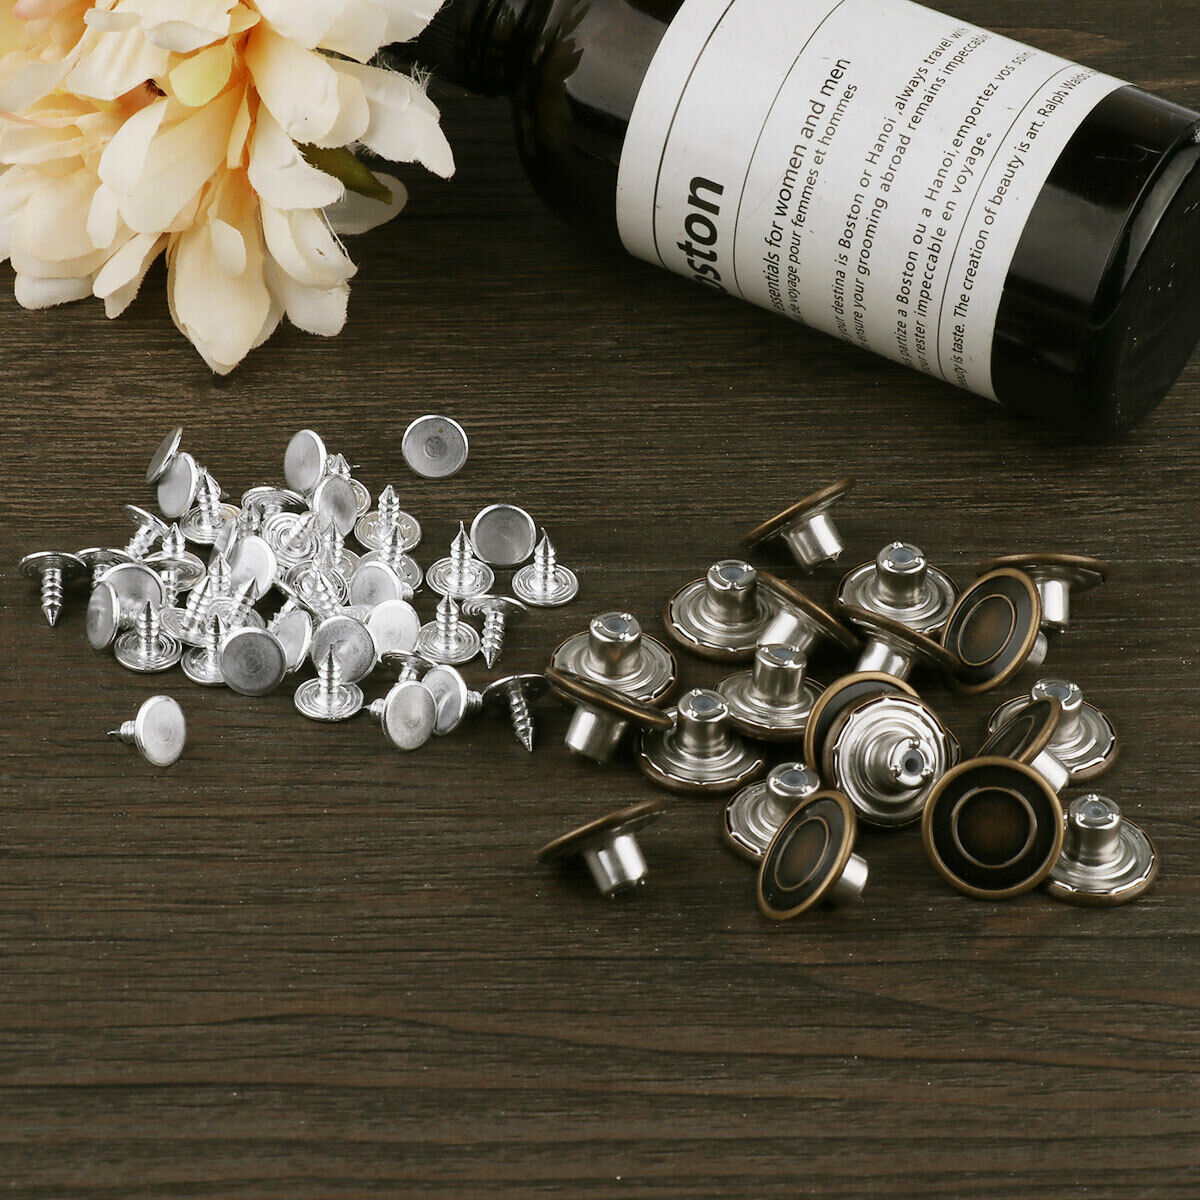 10Pcs_Clothes Retro Buttons Buckle Accessories with Nails Kits for Jeans Coat HQ